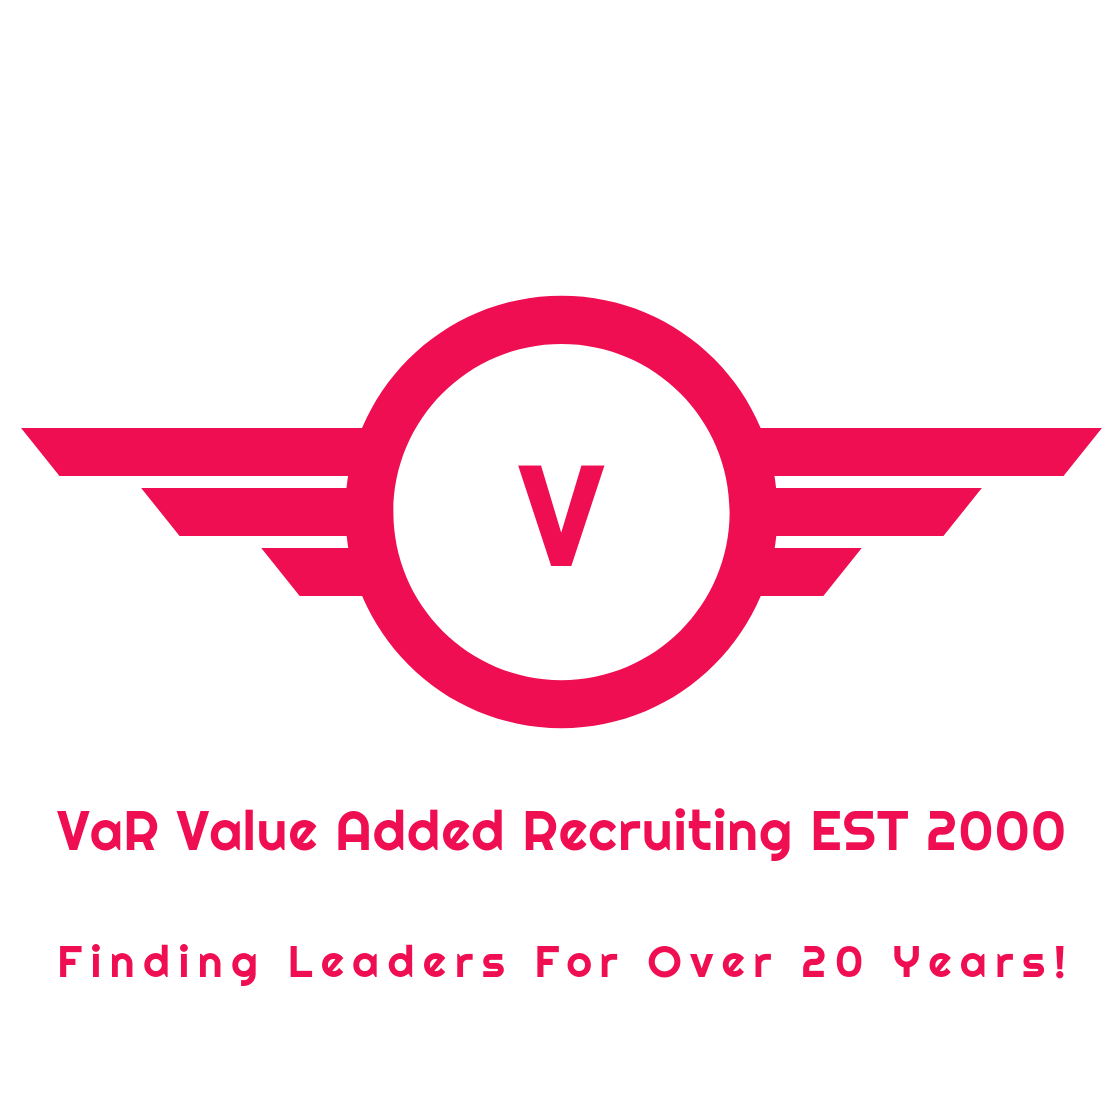 VaR Value Added Recruiting